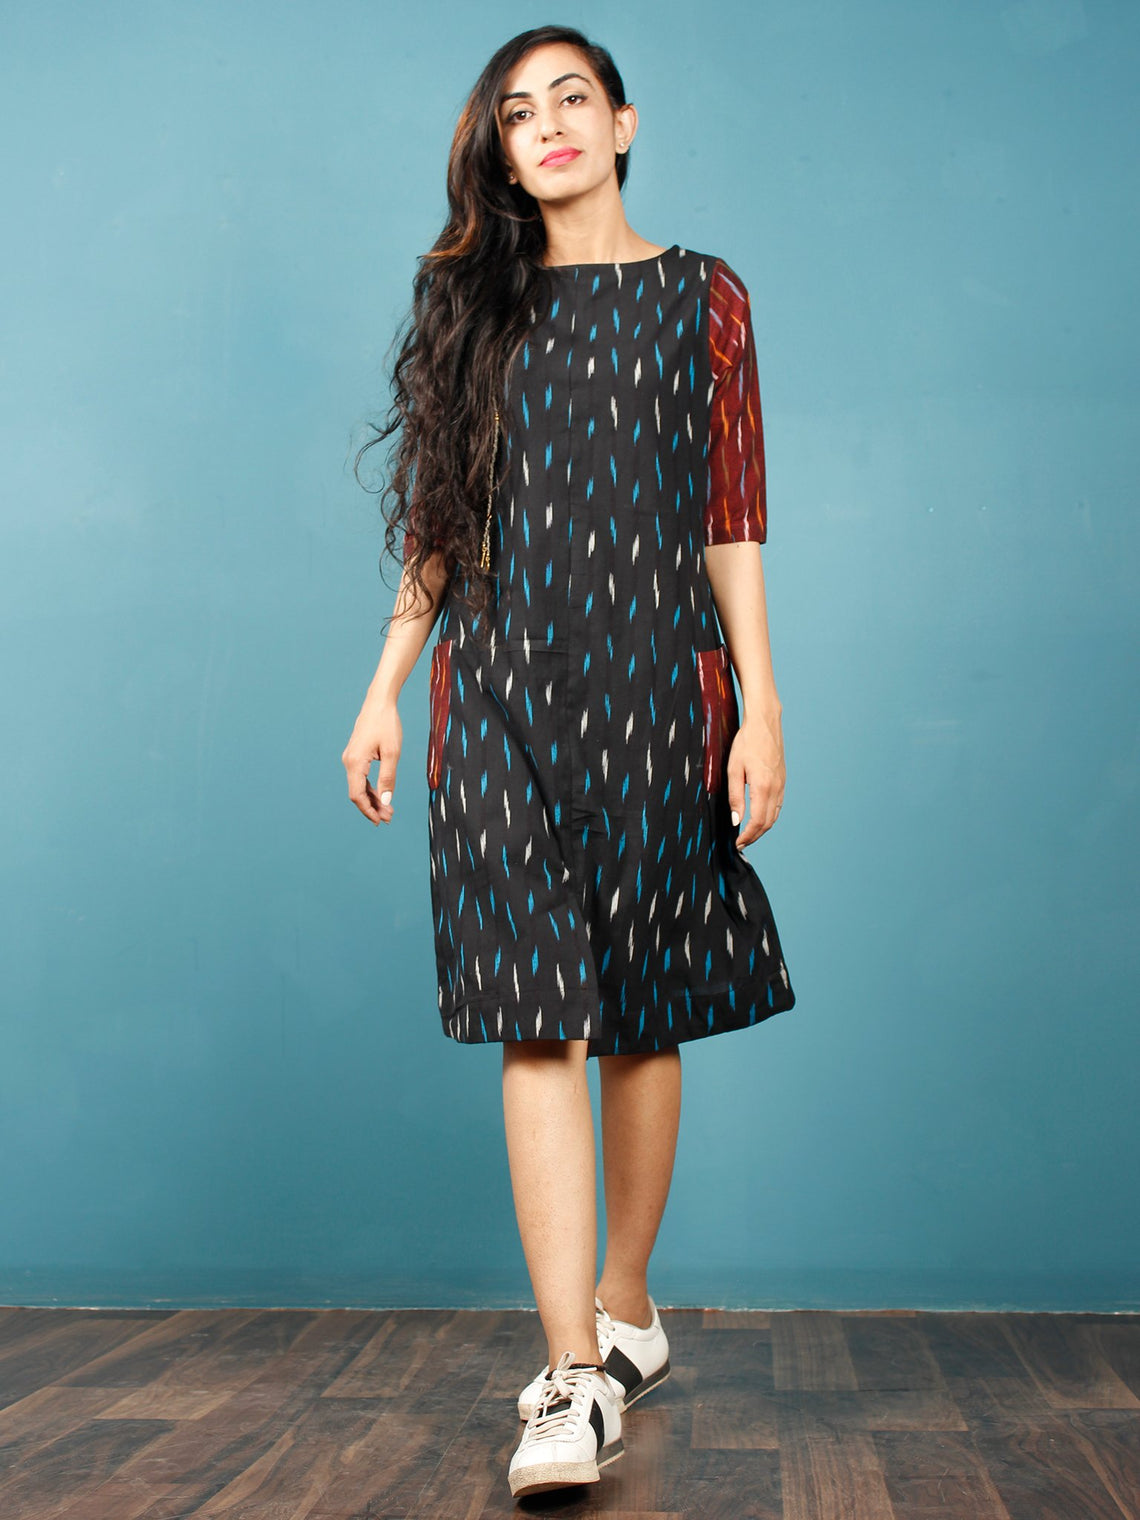 c813d0663b81 ... Black Turquoise Maroon White Ikat Handwoven Tunic Dress With Side  Pockets And Back Slit - D66F739 ...